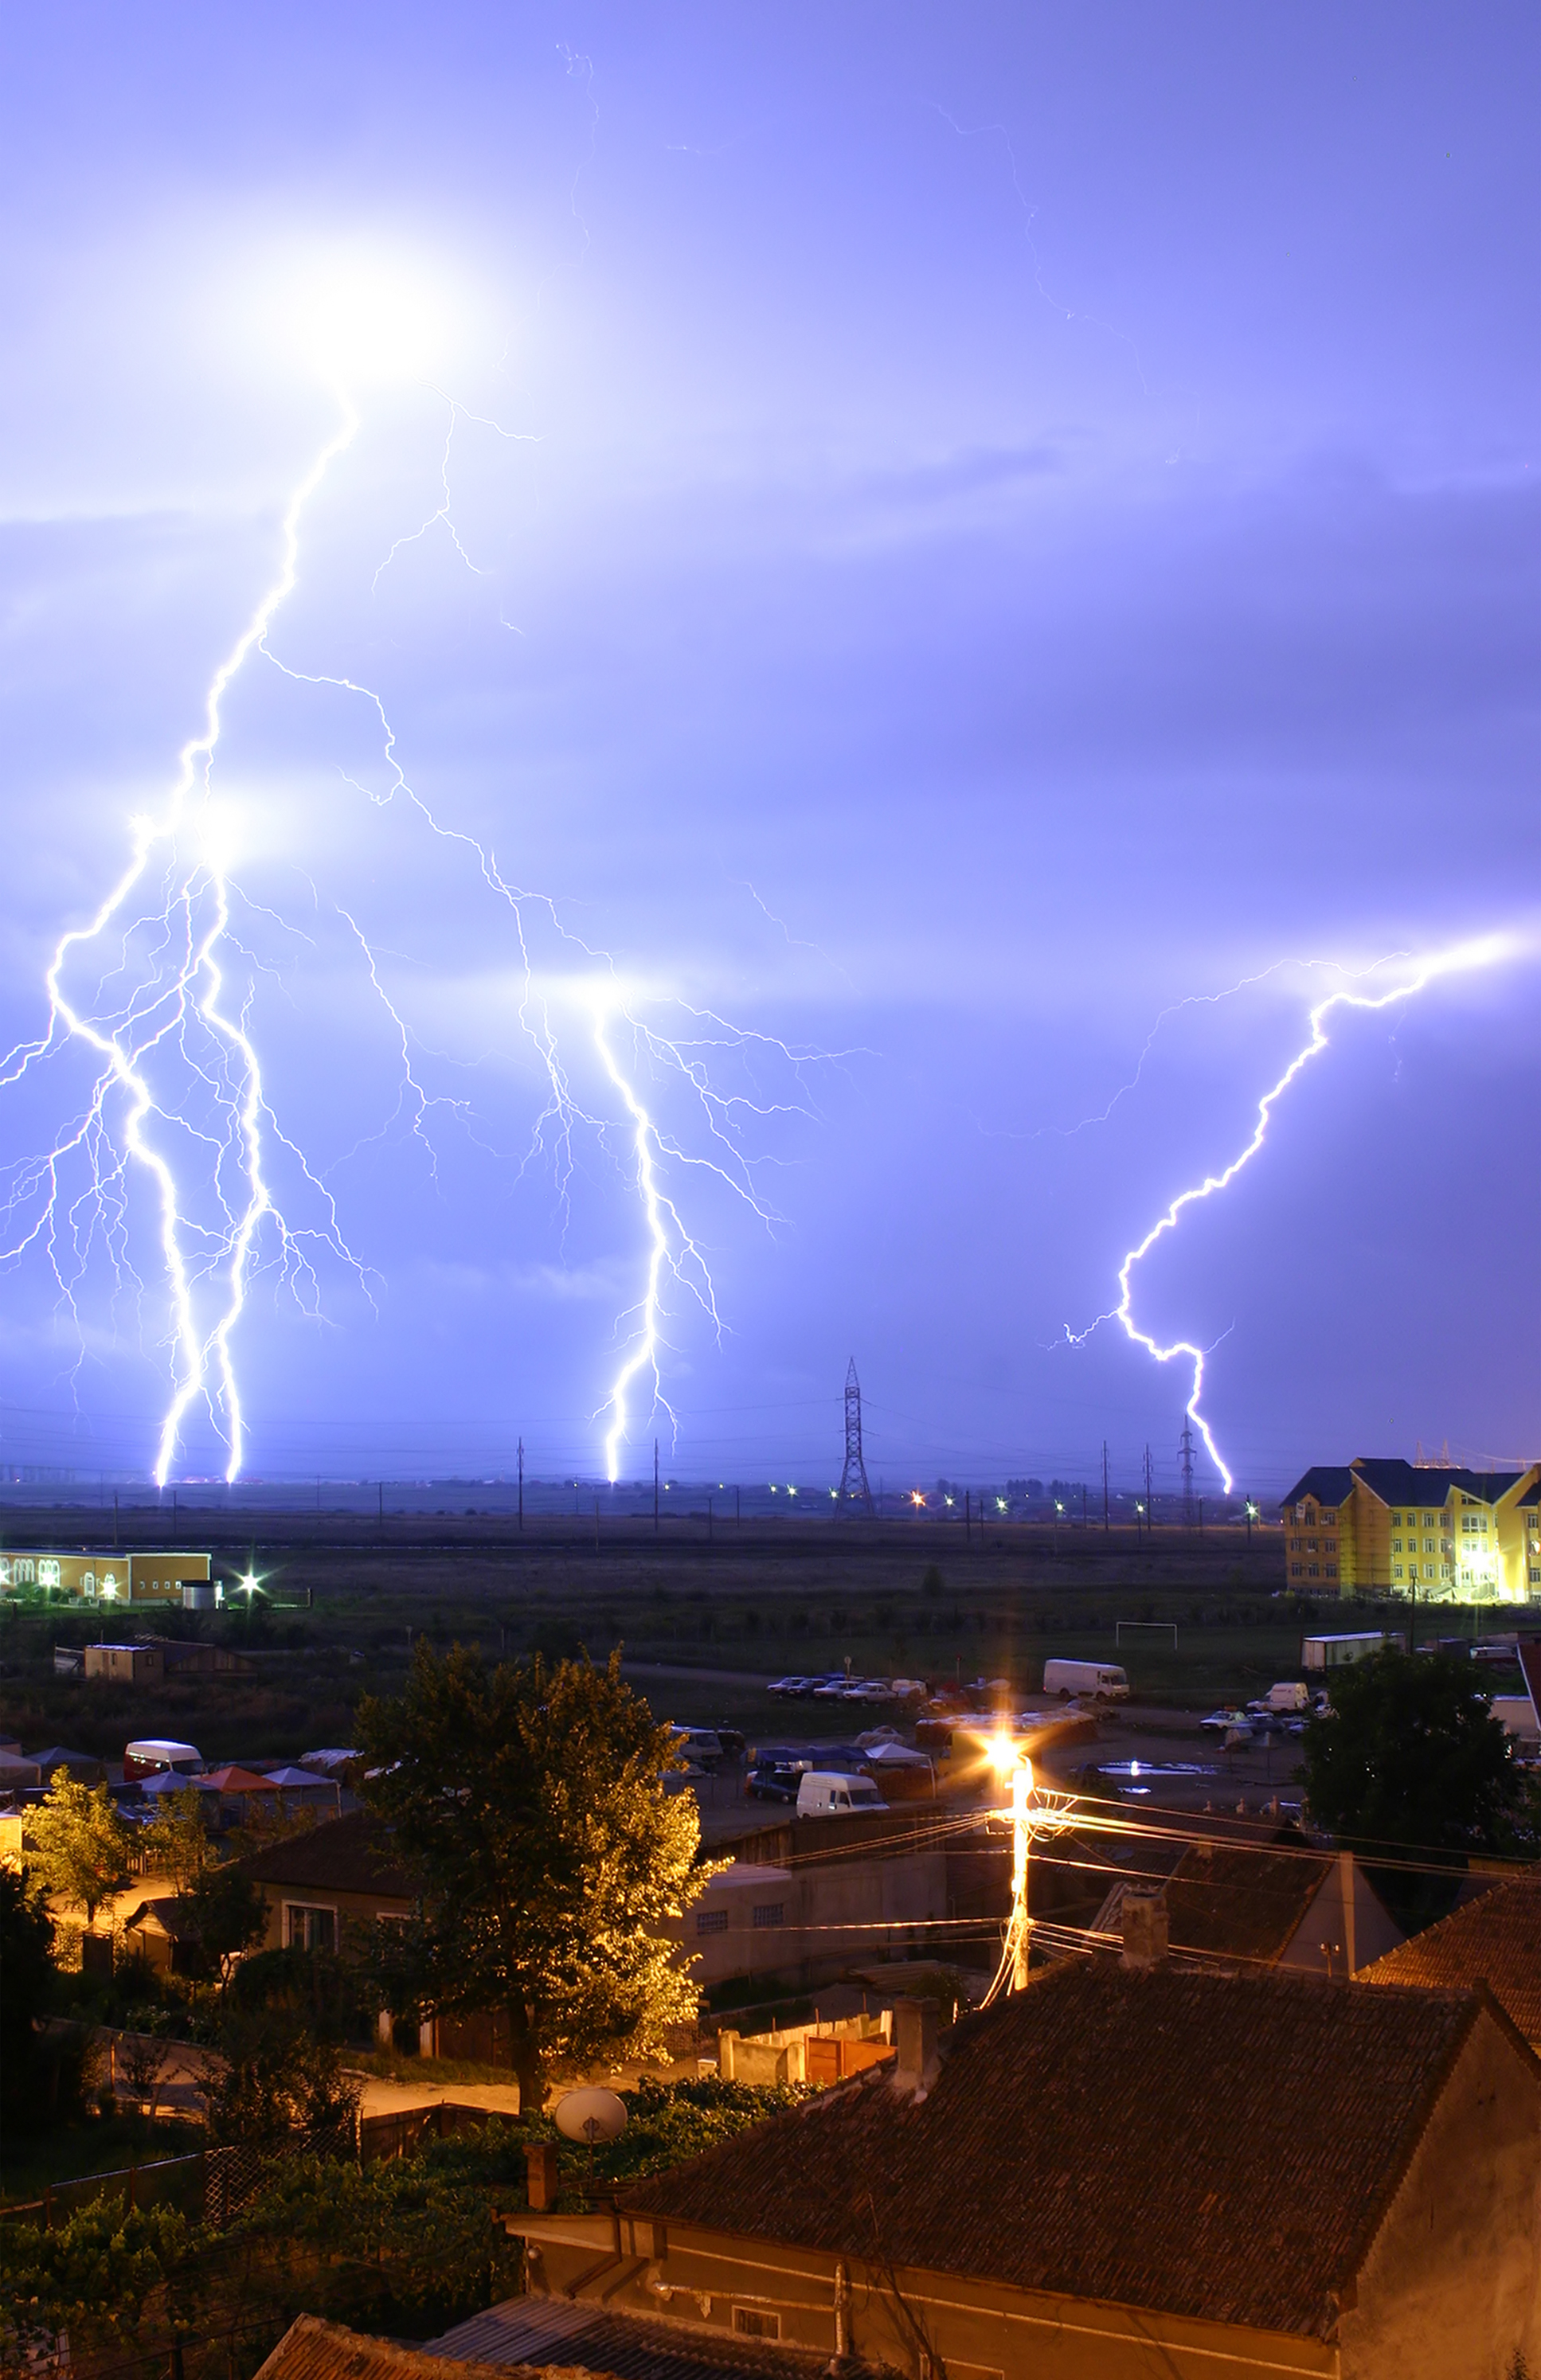 hight resolution of strokes of cloud to ground lightning during a thunderstorm